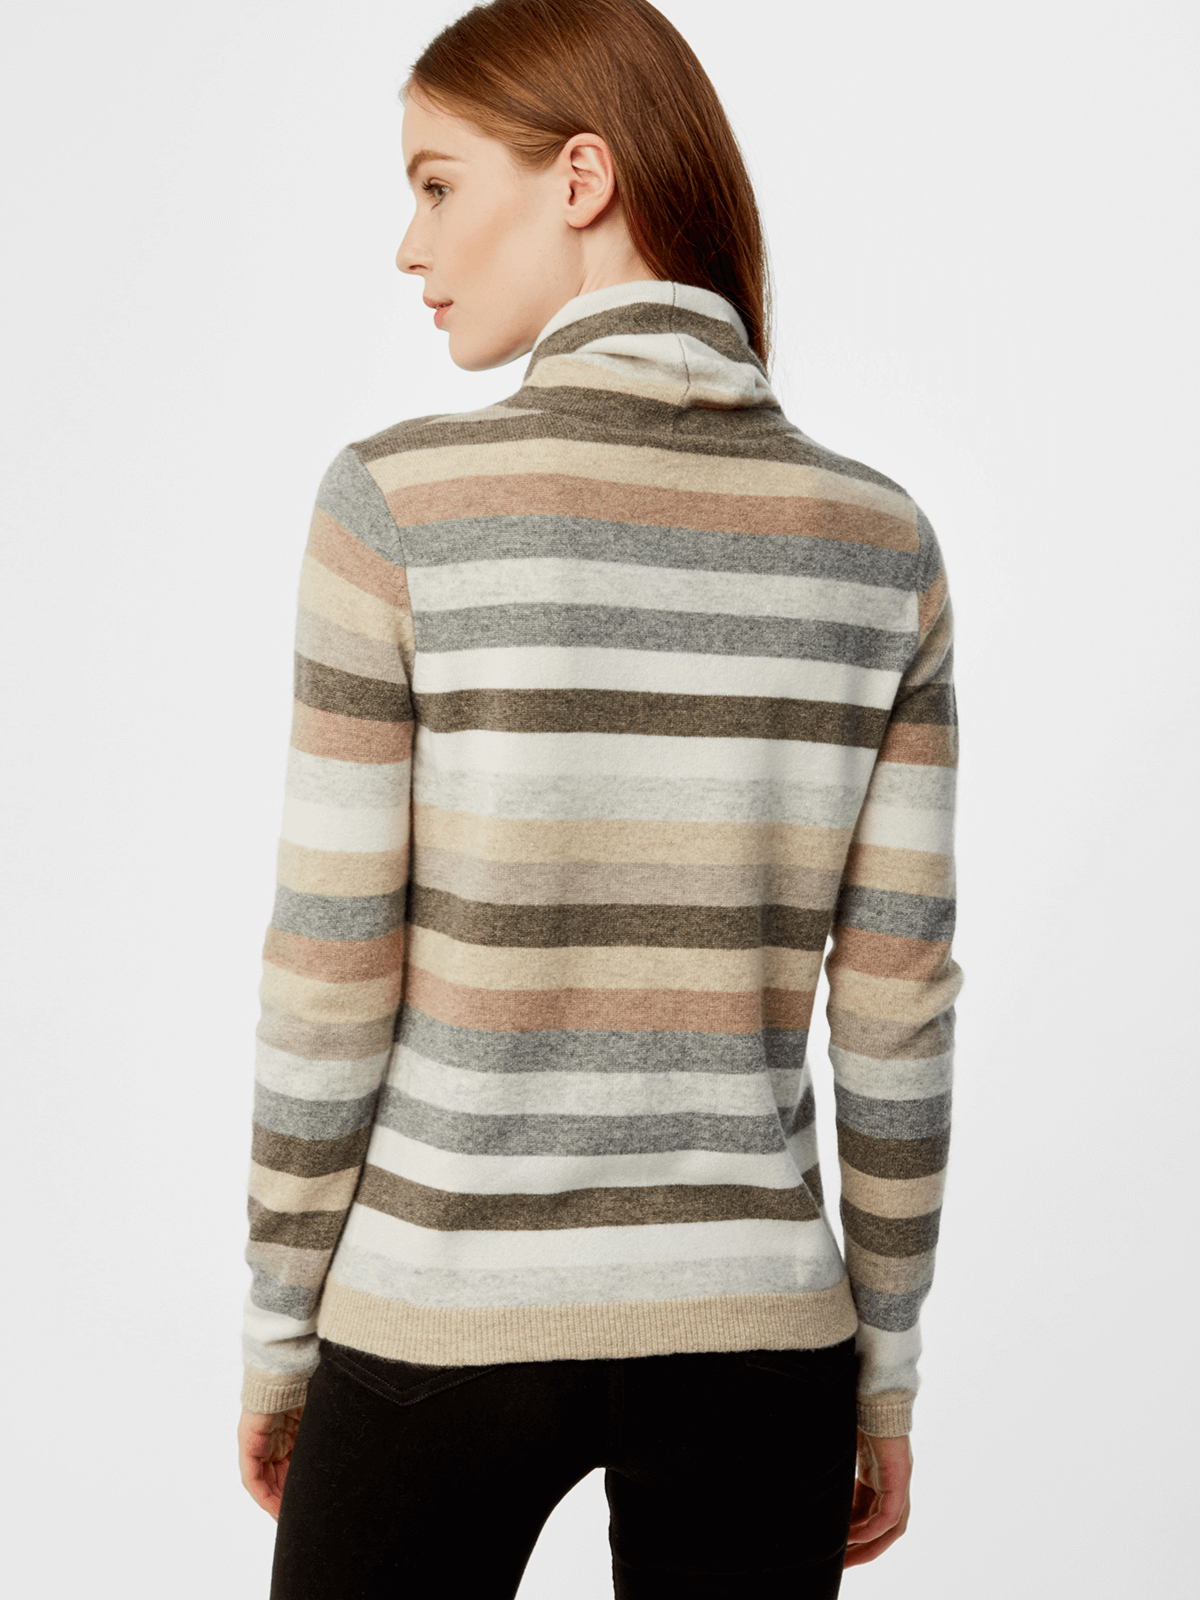 525 America Cashmere Striped Turtleneck Sweater